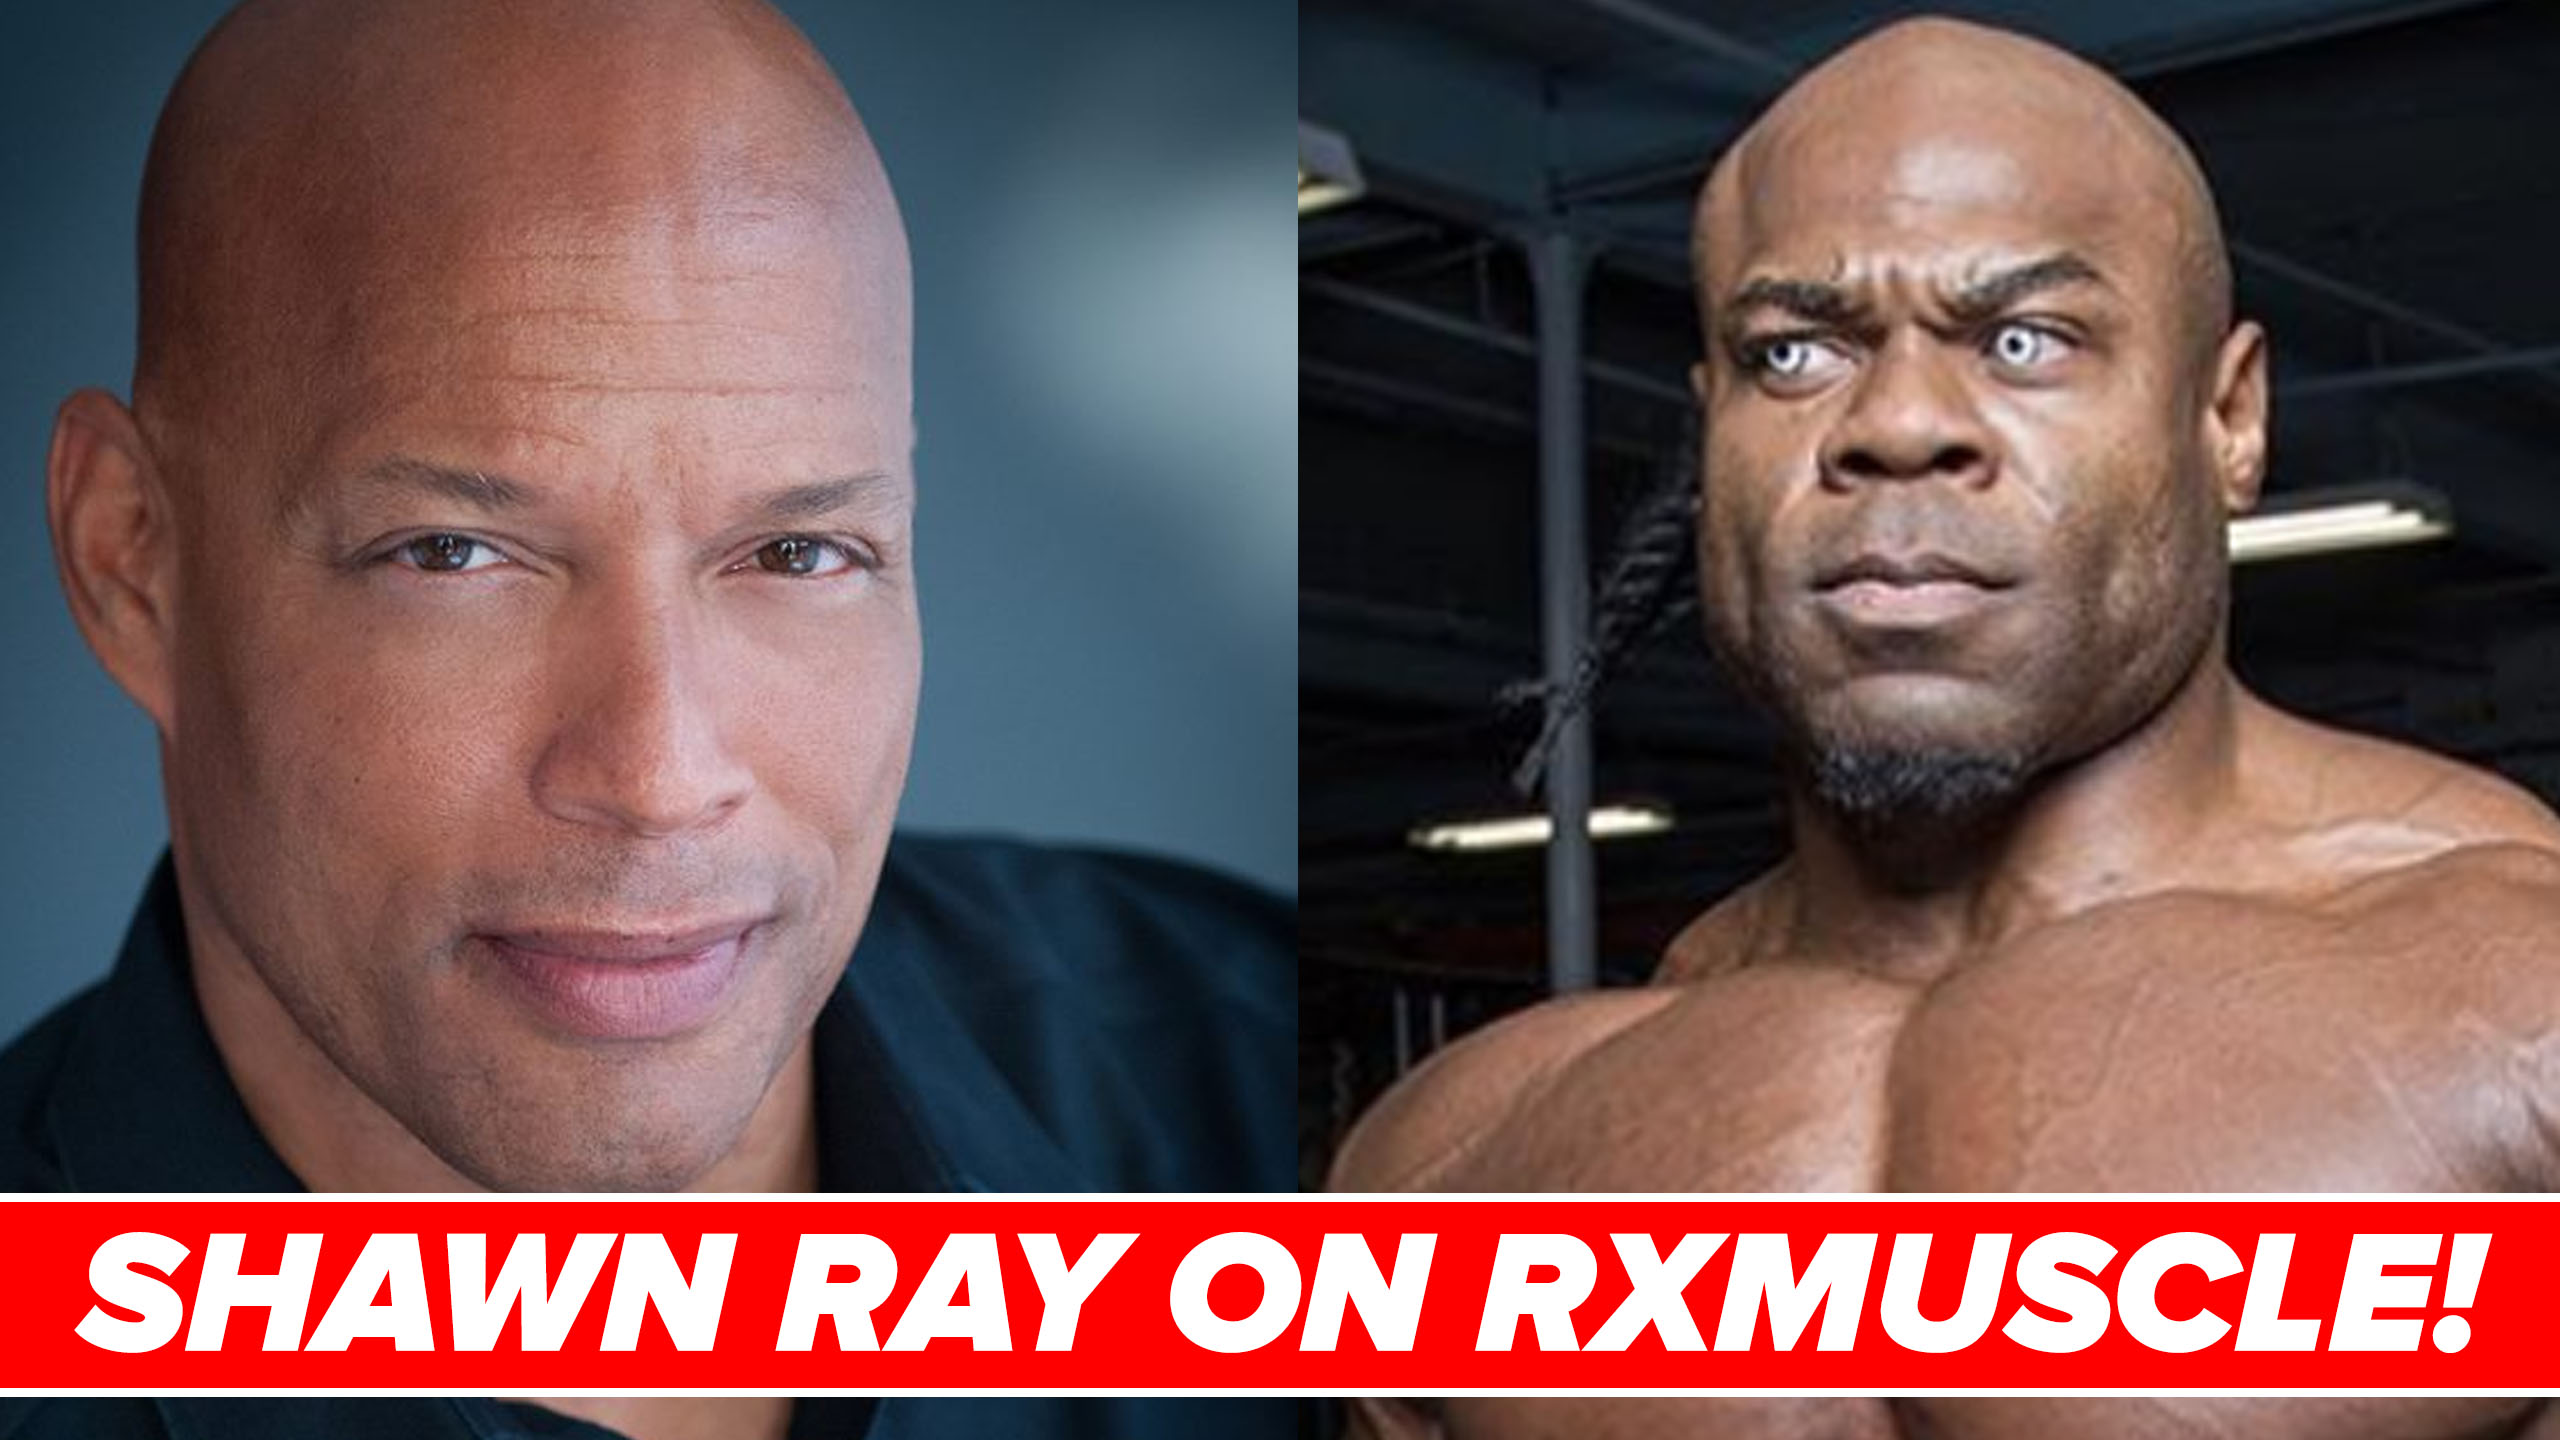 shawn ray interview rxmuscle